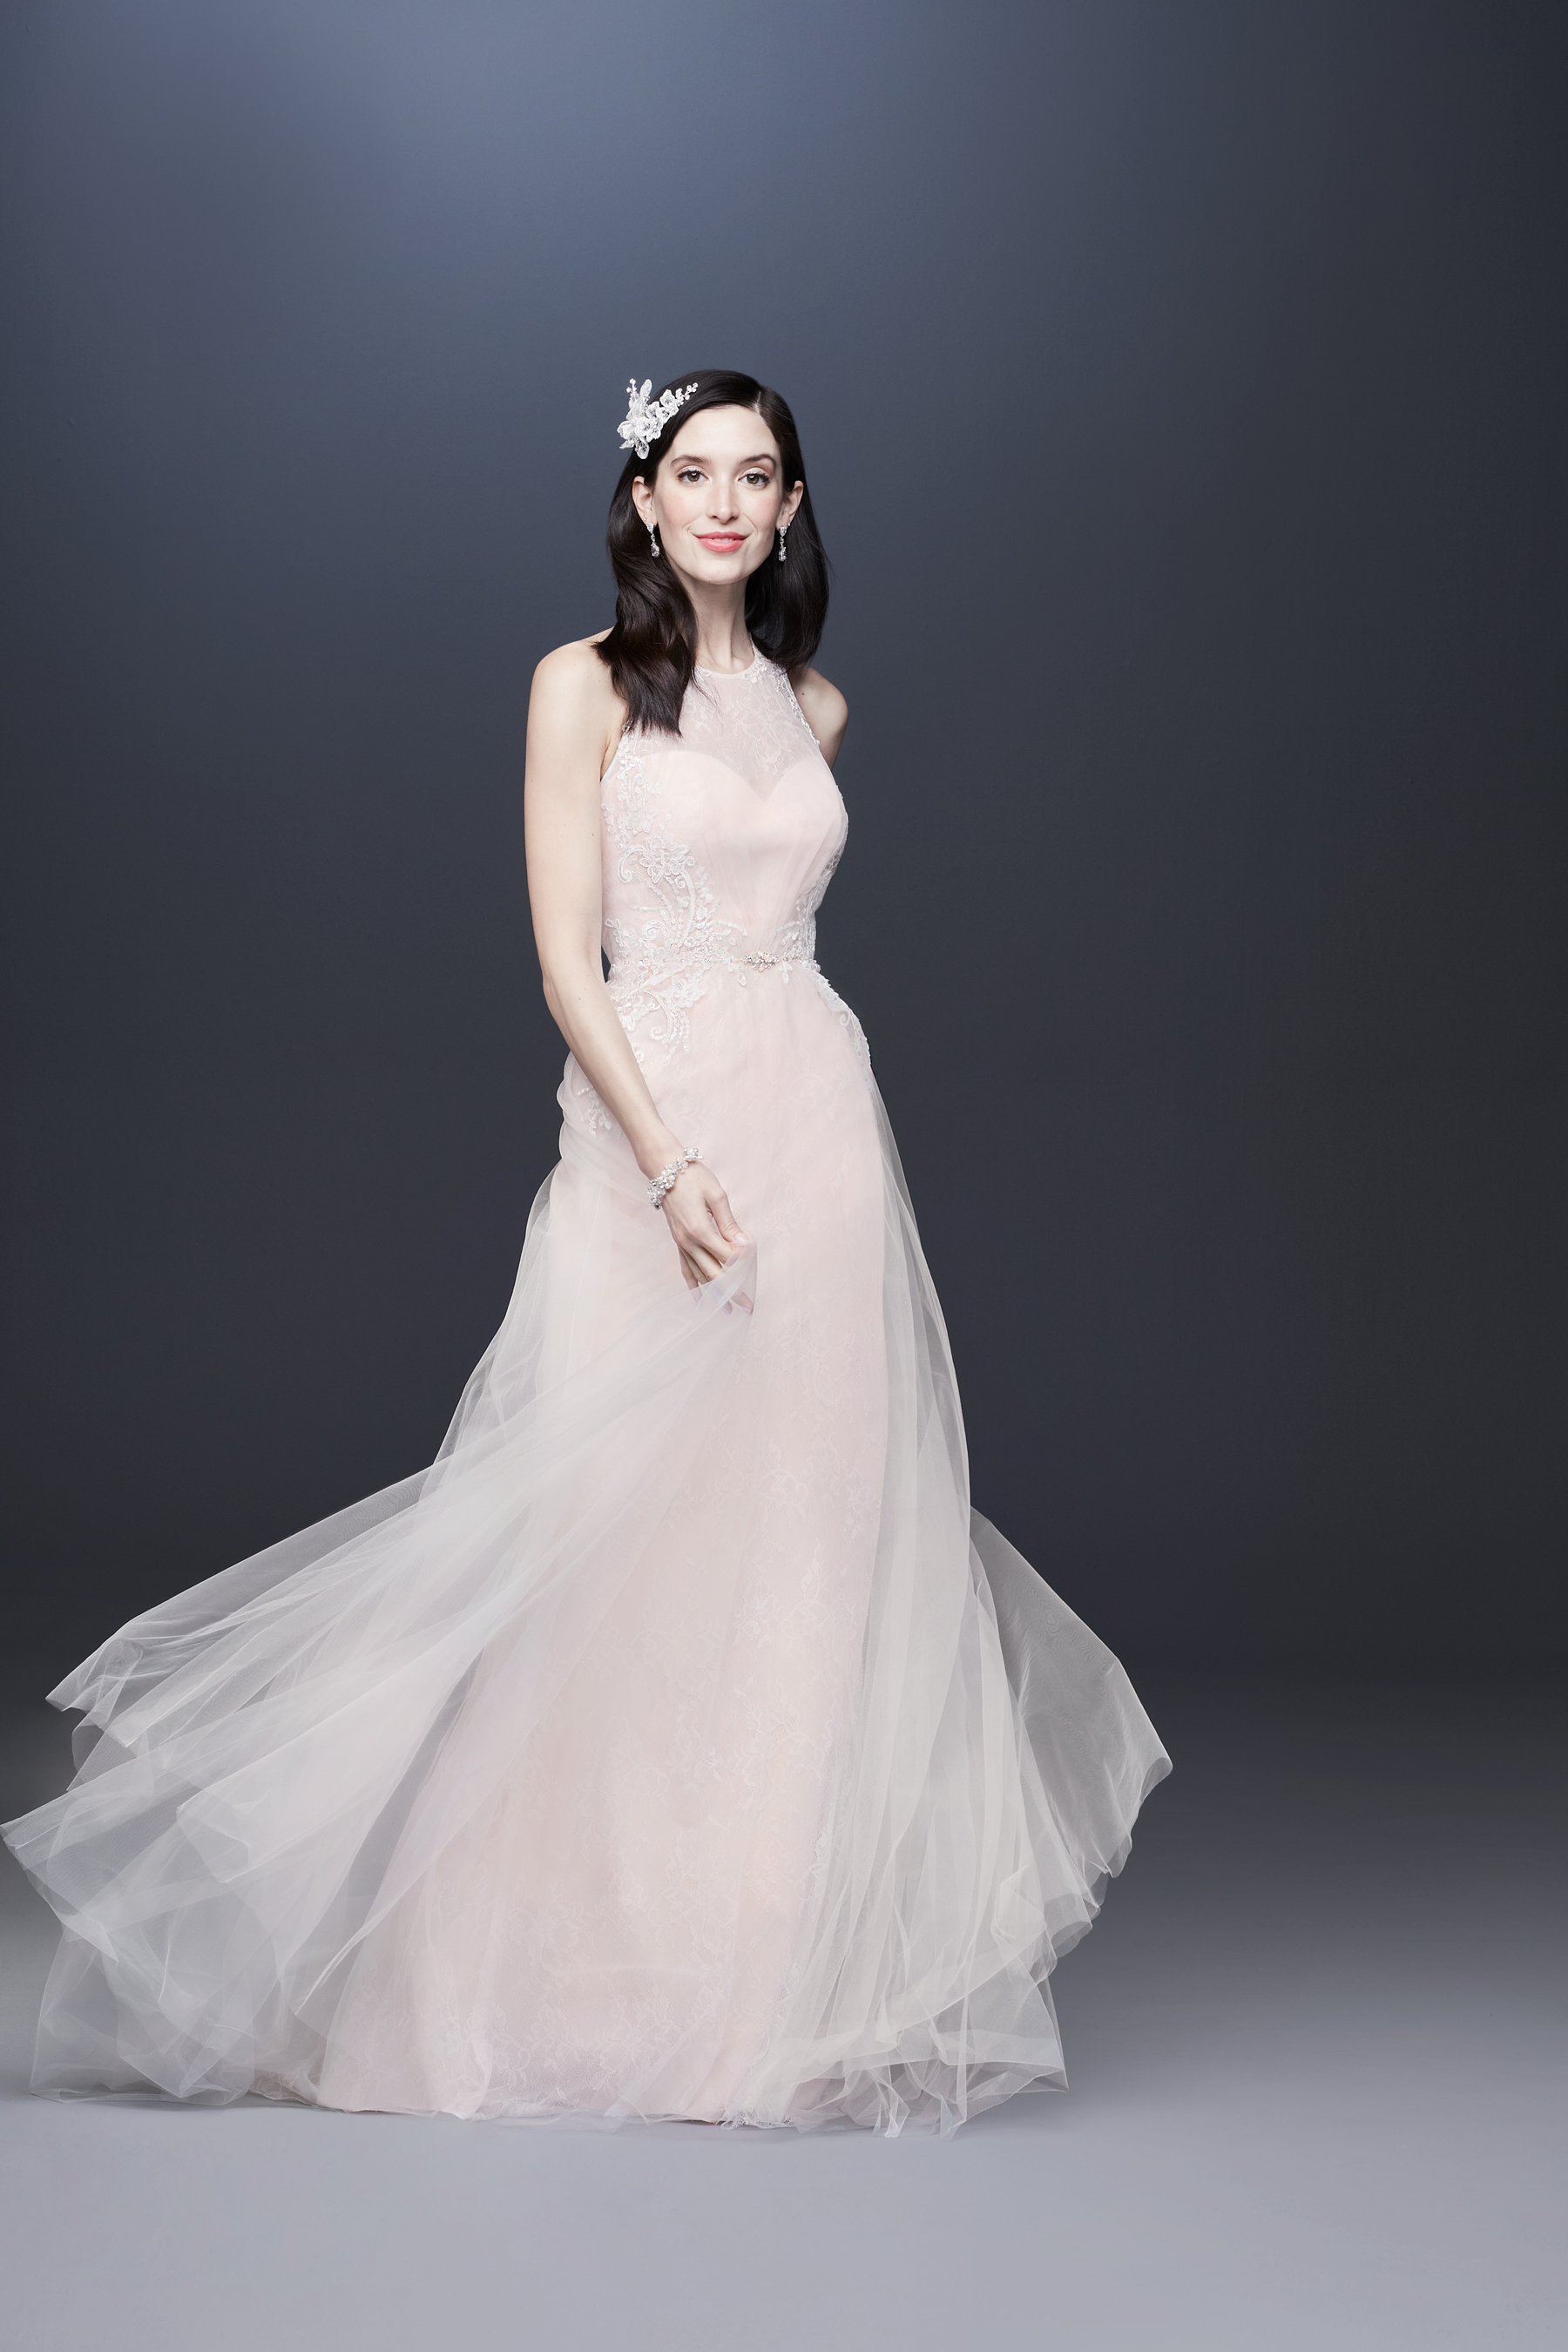 illusion high neck sleeveless tulle skirt a-line wedding dress Davids Bridal Spring 2020